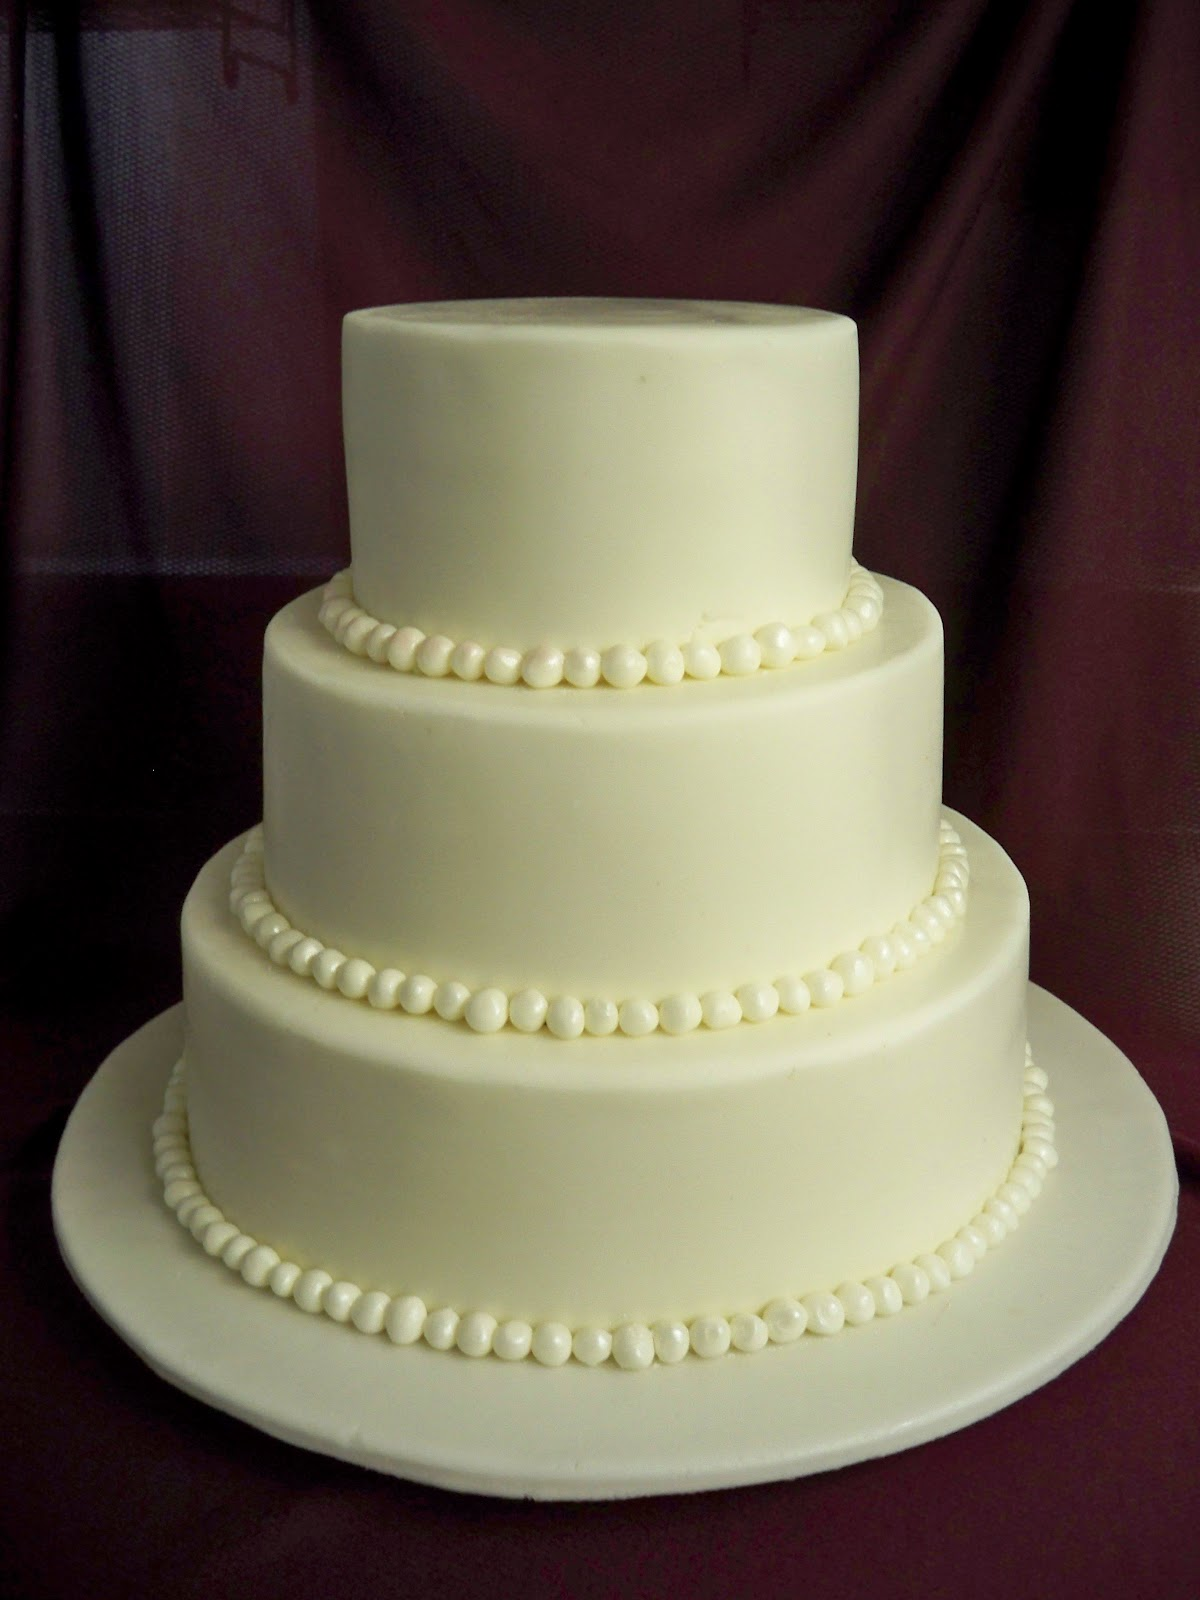 Which Tier Of Wedding Cake To Cut